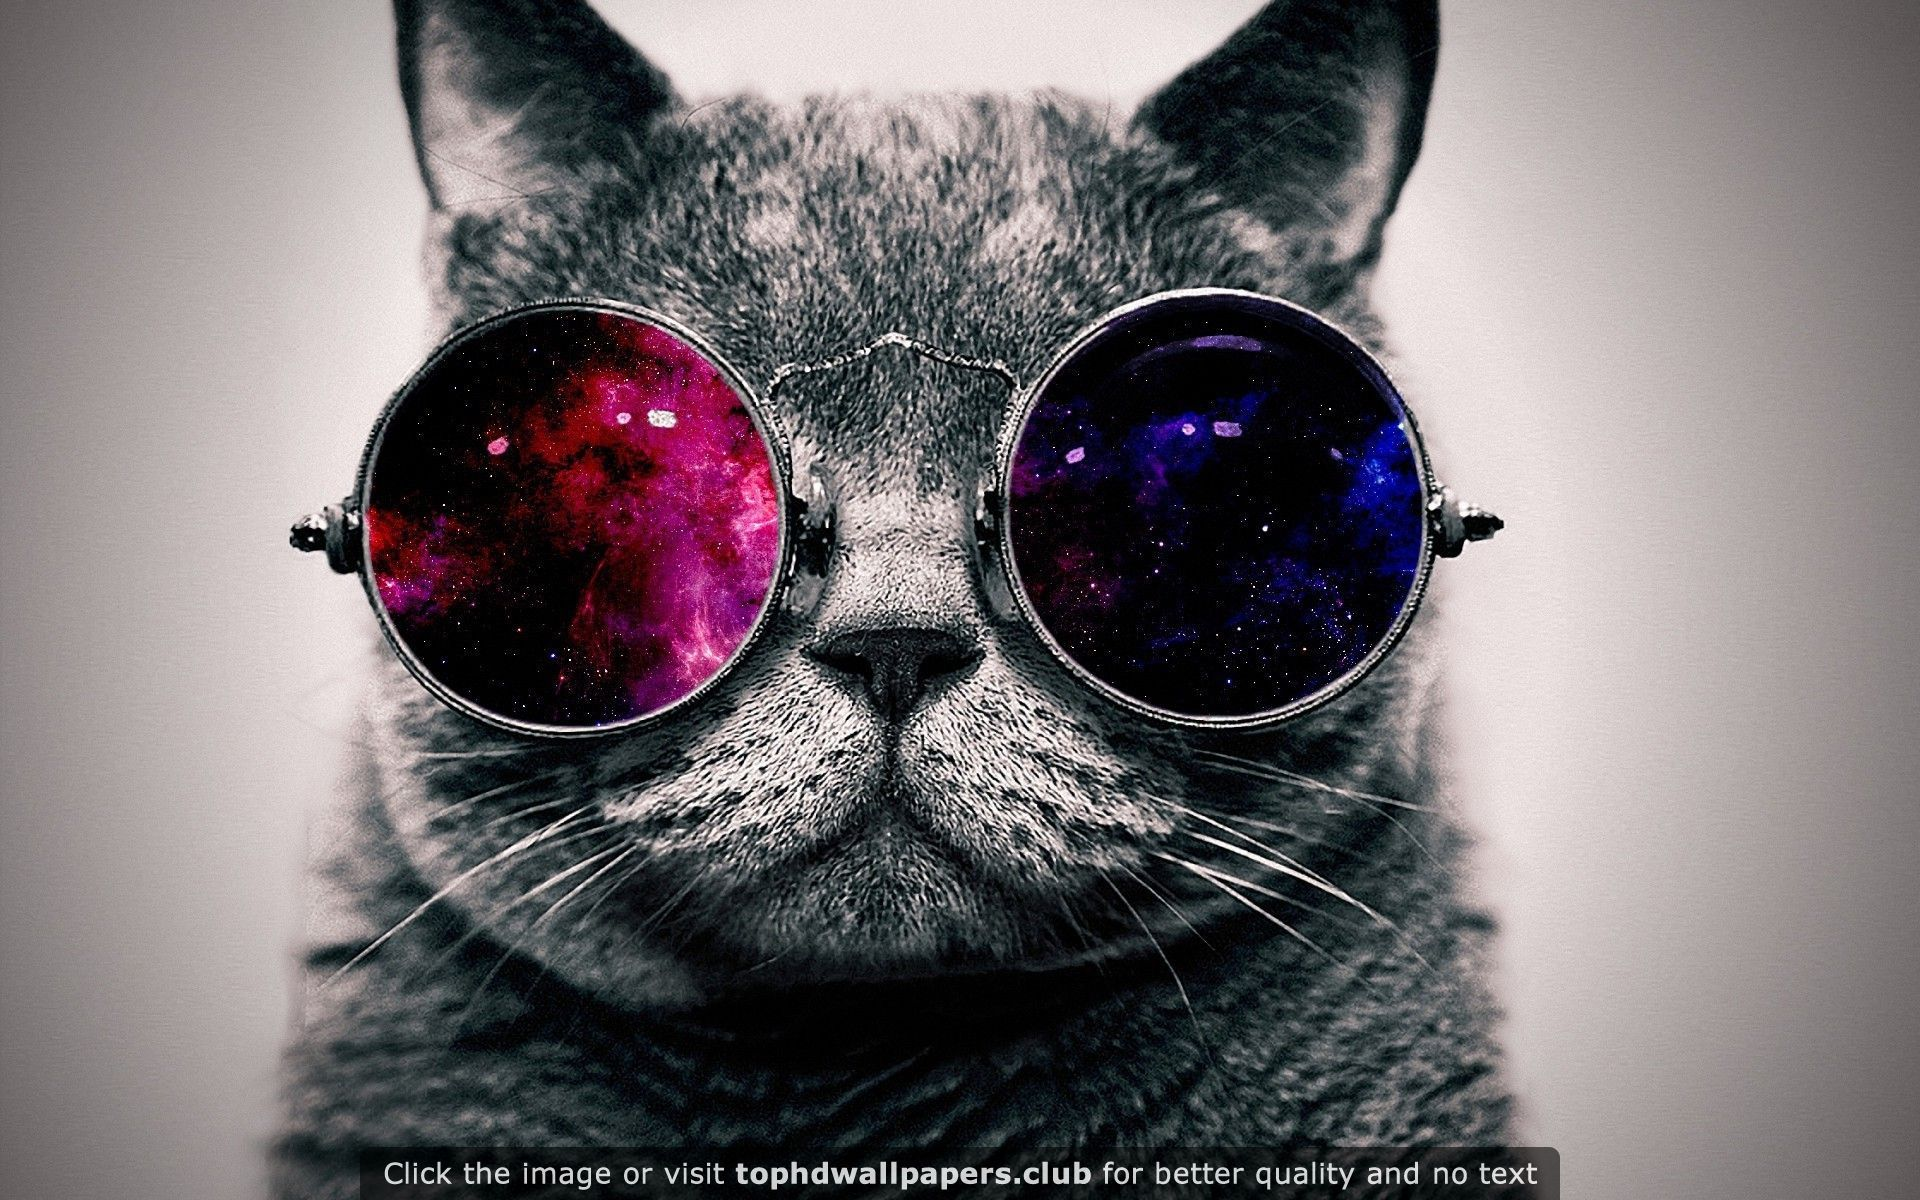 Sunglasses 4k Wallpapers For Your Desktop Or Mobile Screen Free And Easy To Download Glasses Wallpaper Cat Glasses Hipster Cat